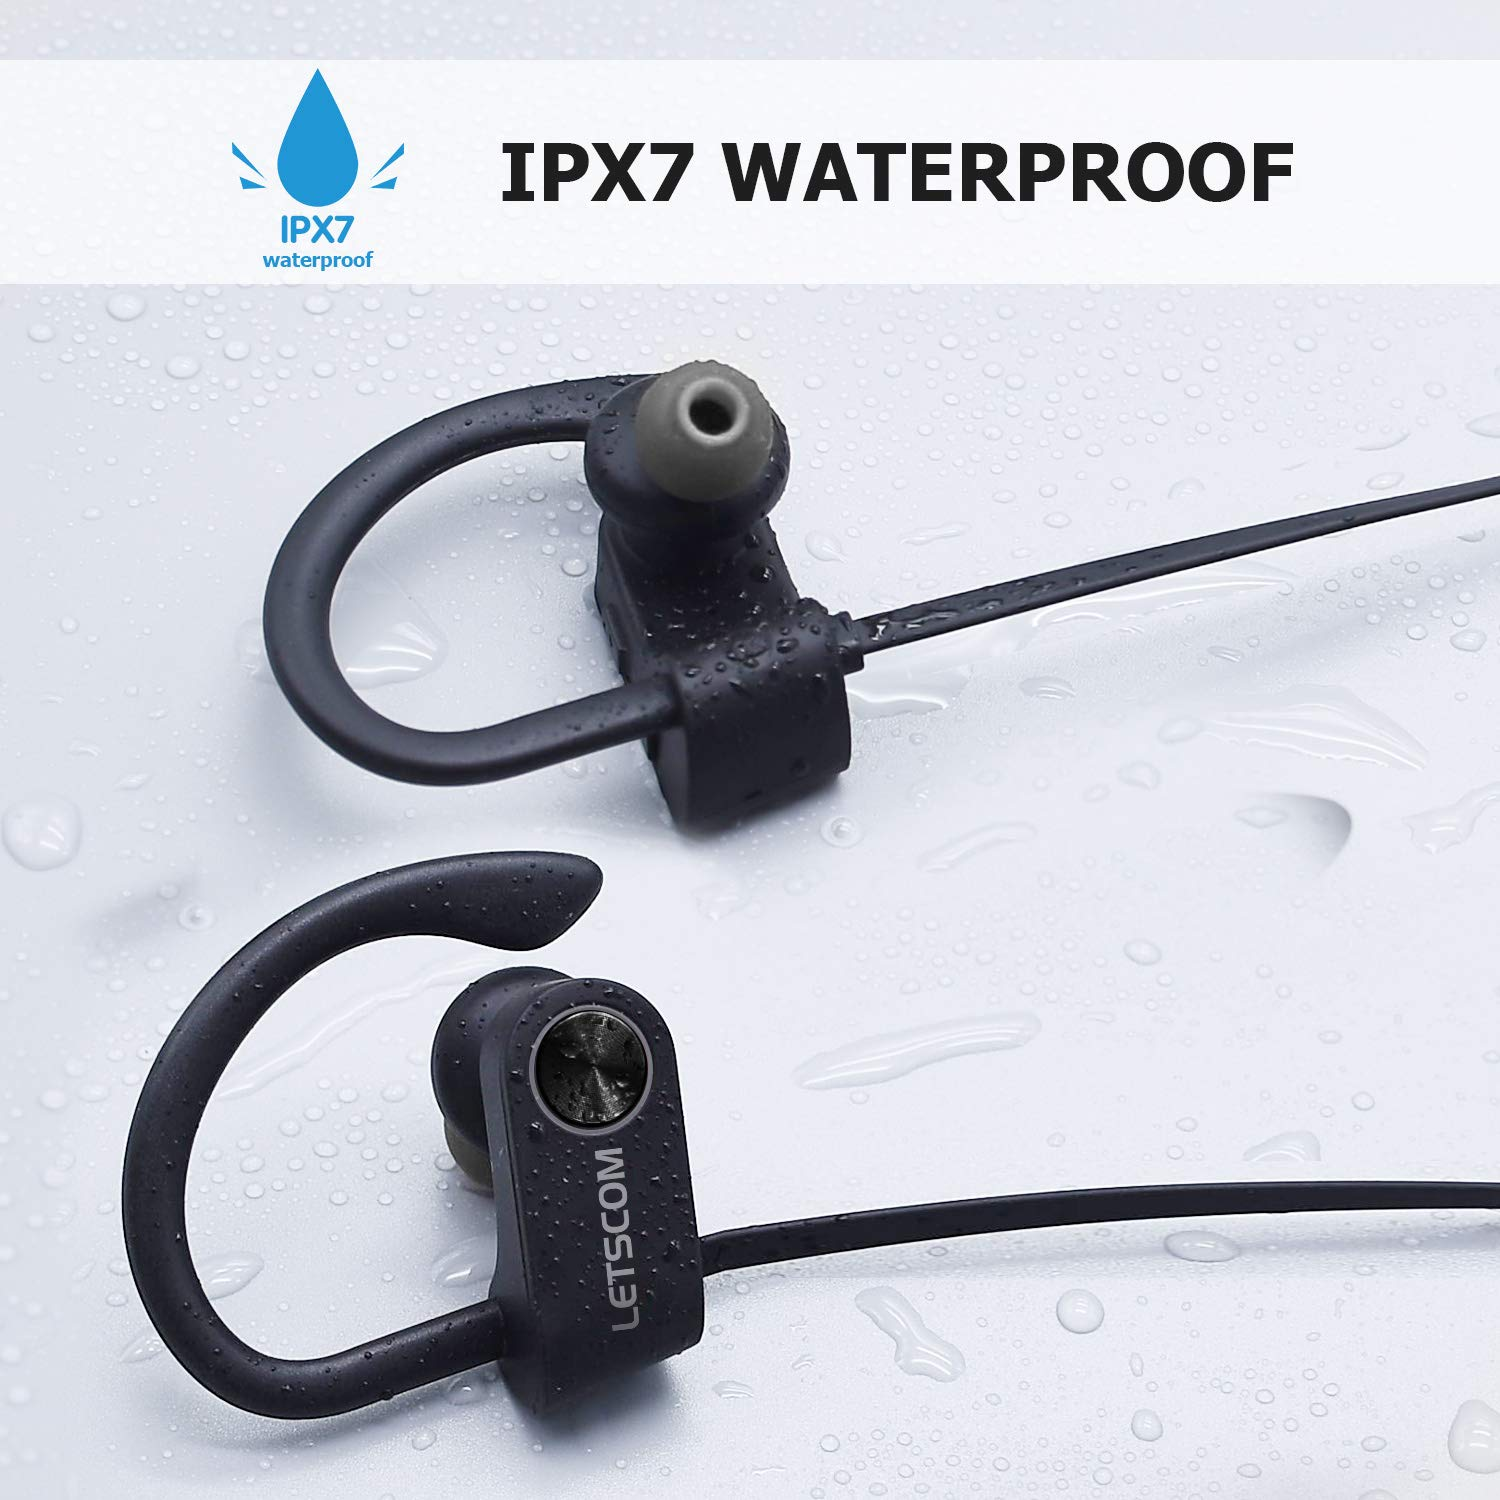 Bluetooth Headphones, LETSCOM Wireless Earbuds IPX7 Waterproof Noise Cancelling Headsets, Richer Bass & HiFi Stereo Sports Earphones 8 Hours Playtime Running Headphones with Travel Case by LETSCOM (Image #4)